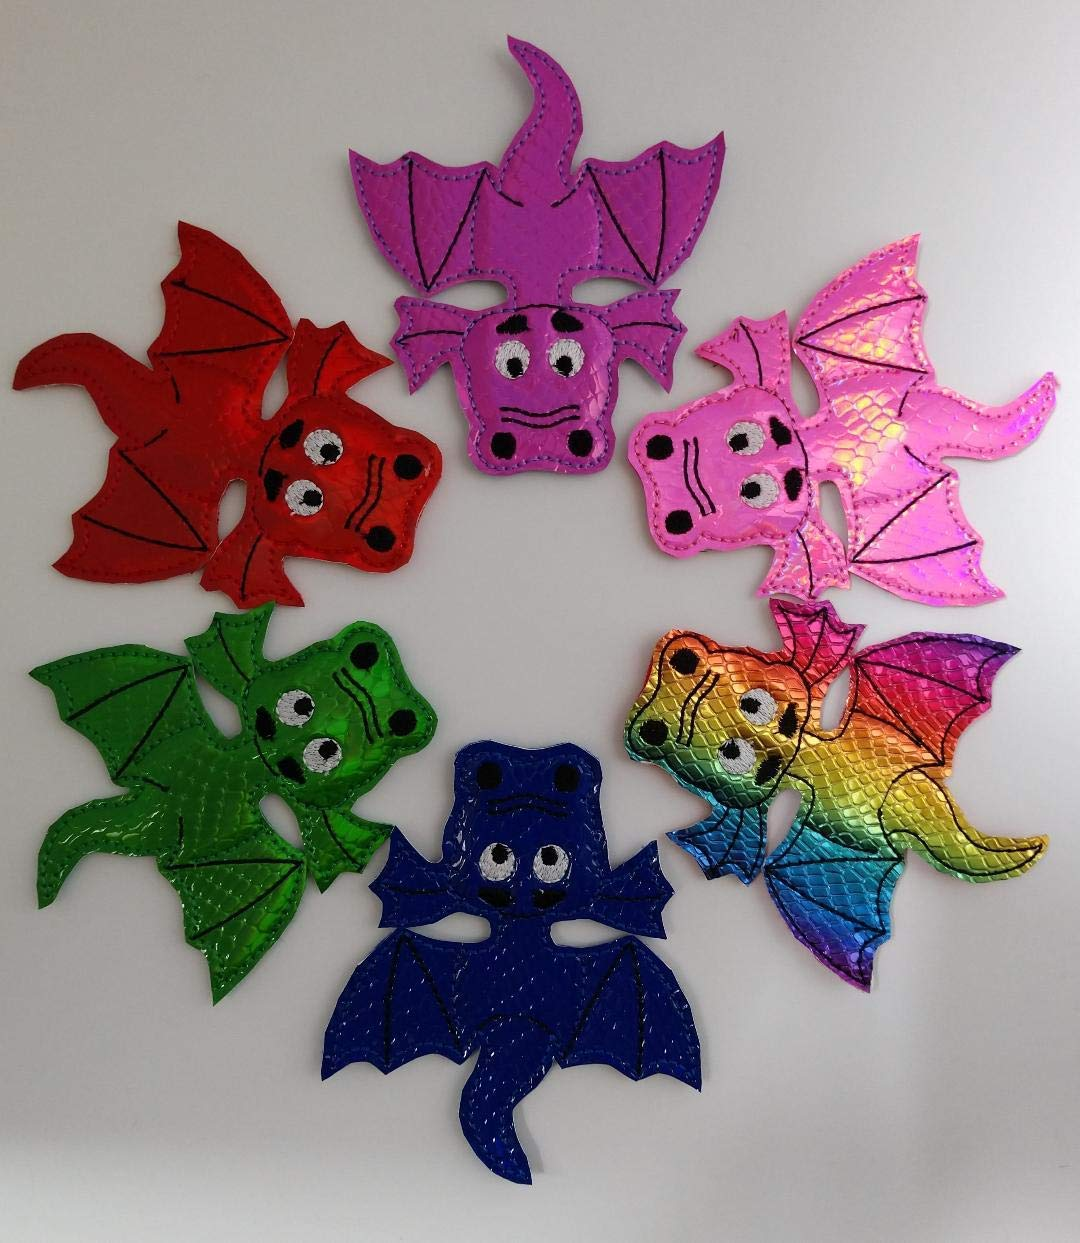 Dragon Finger Puppets for Toddler Kids Storytelling Play Toy Party Favor- 6 Piece Set